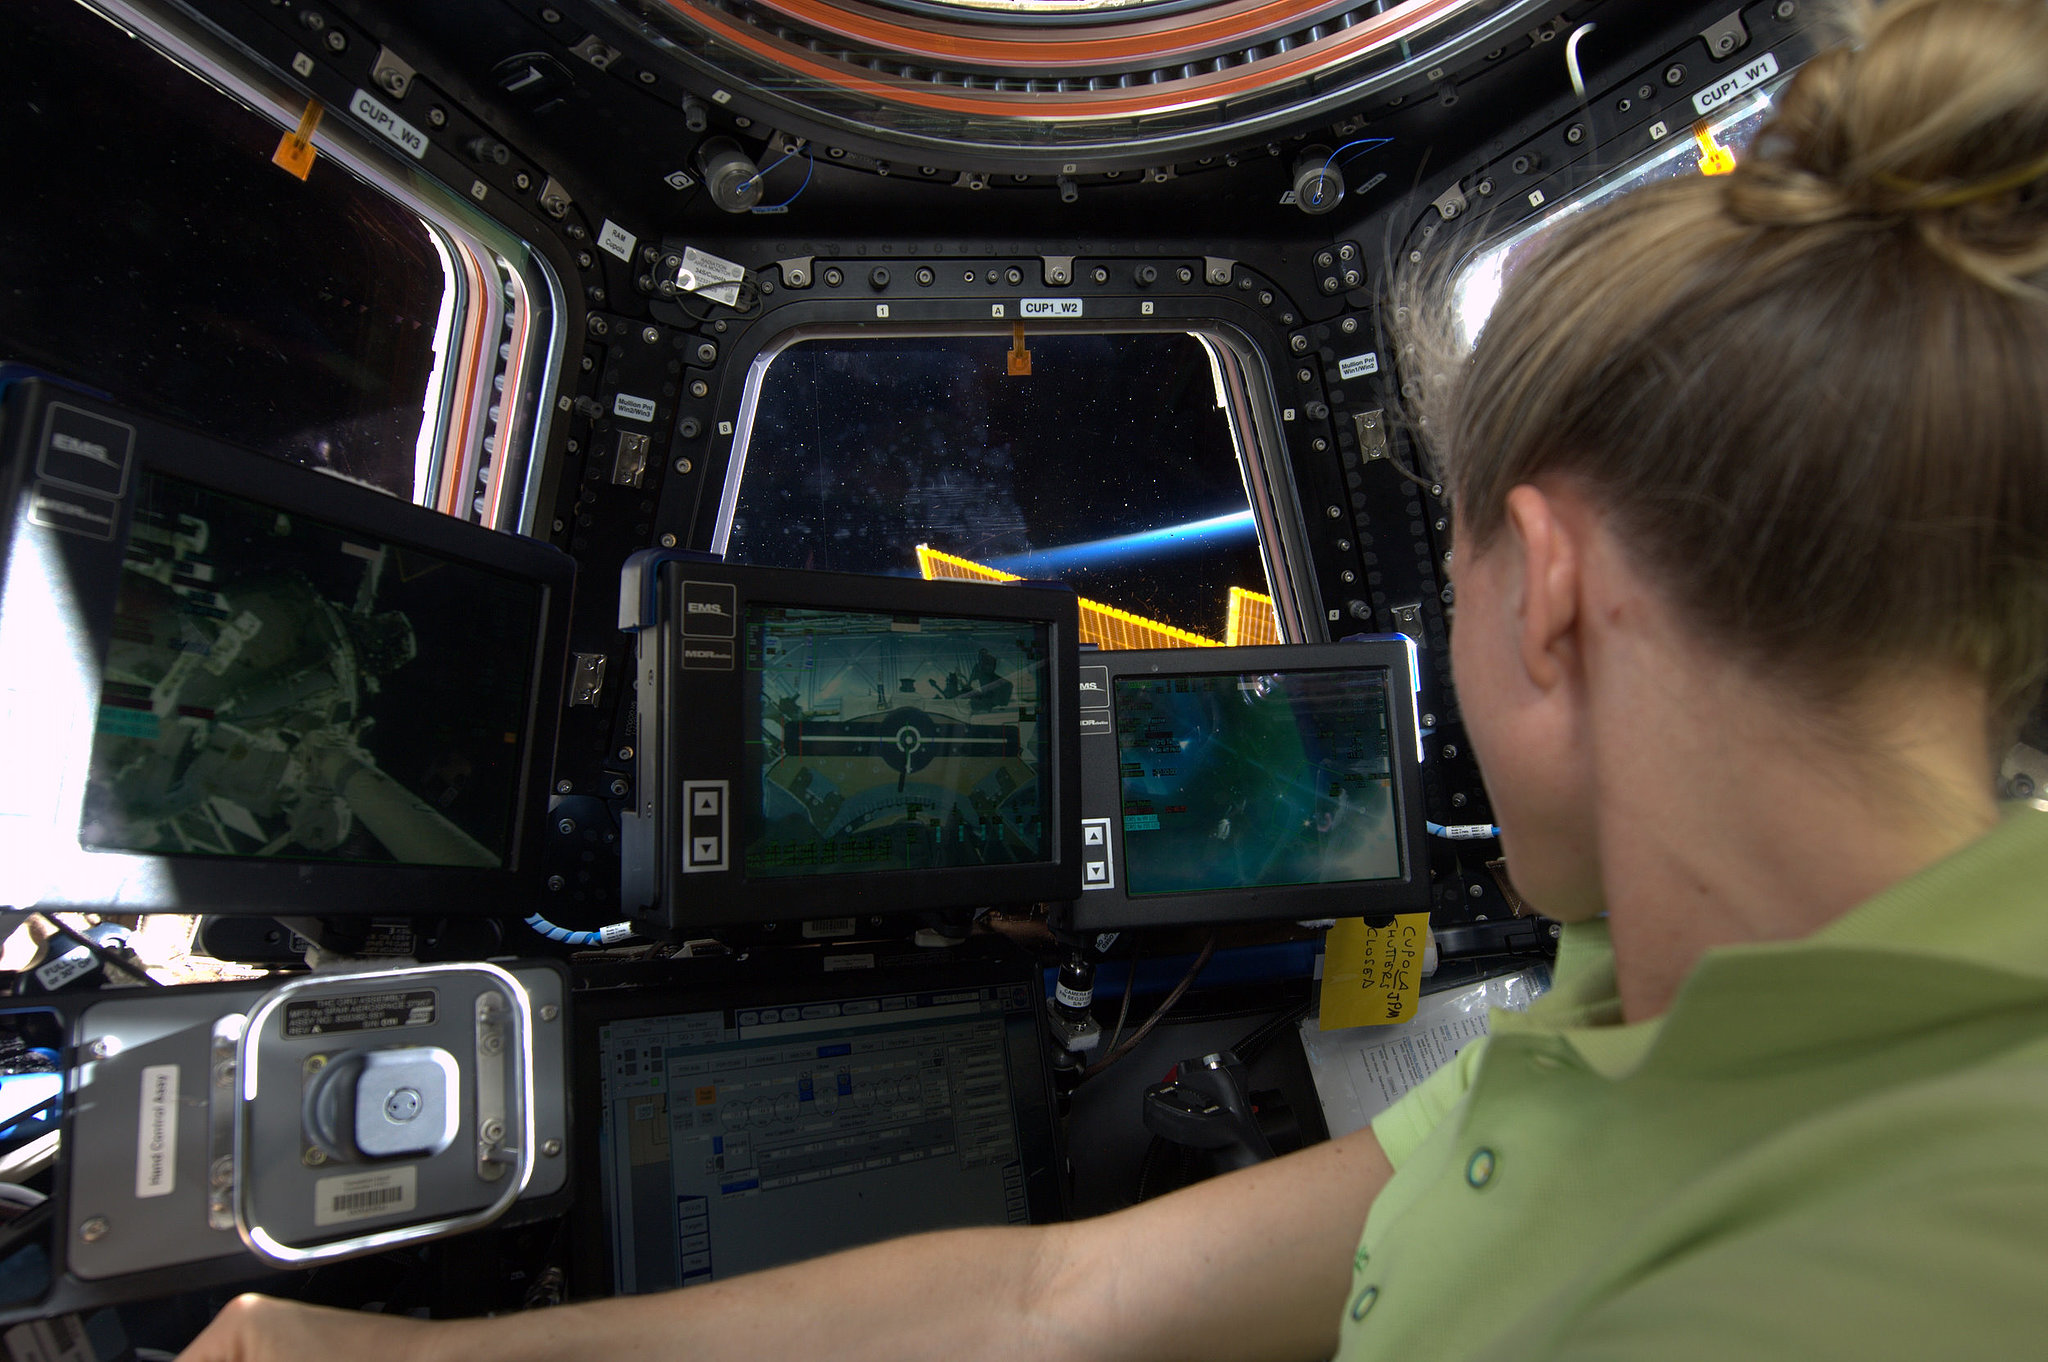 """At the Robotics Work Station in the Cupola. This is where we'll be to capture #HTV4 cargo vehicle with #Canadarm2 on Friday, August 9. My incentive: garlic paste and a care package from home! KN from space."" Source: Pinterest user Karen Nyberg"